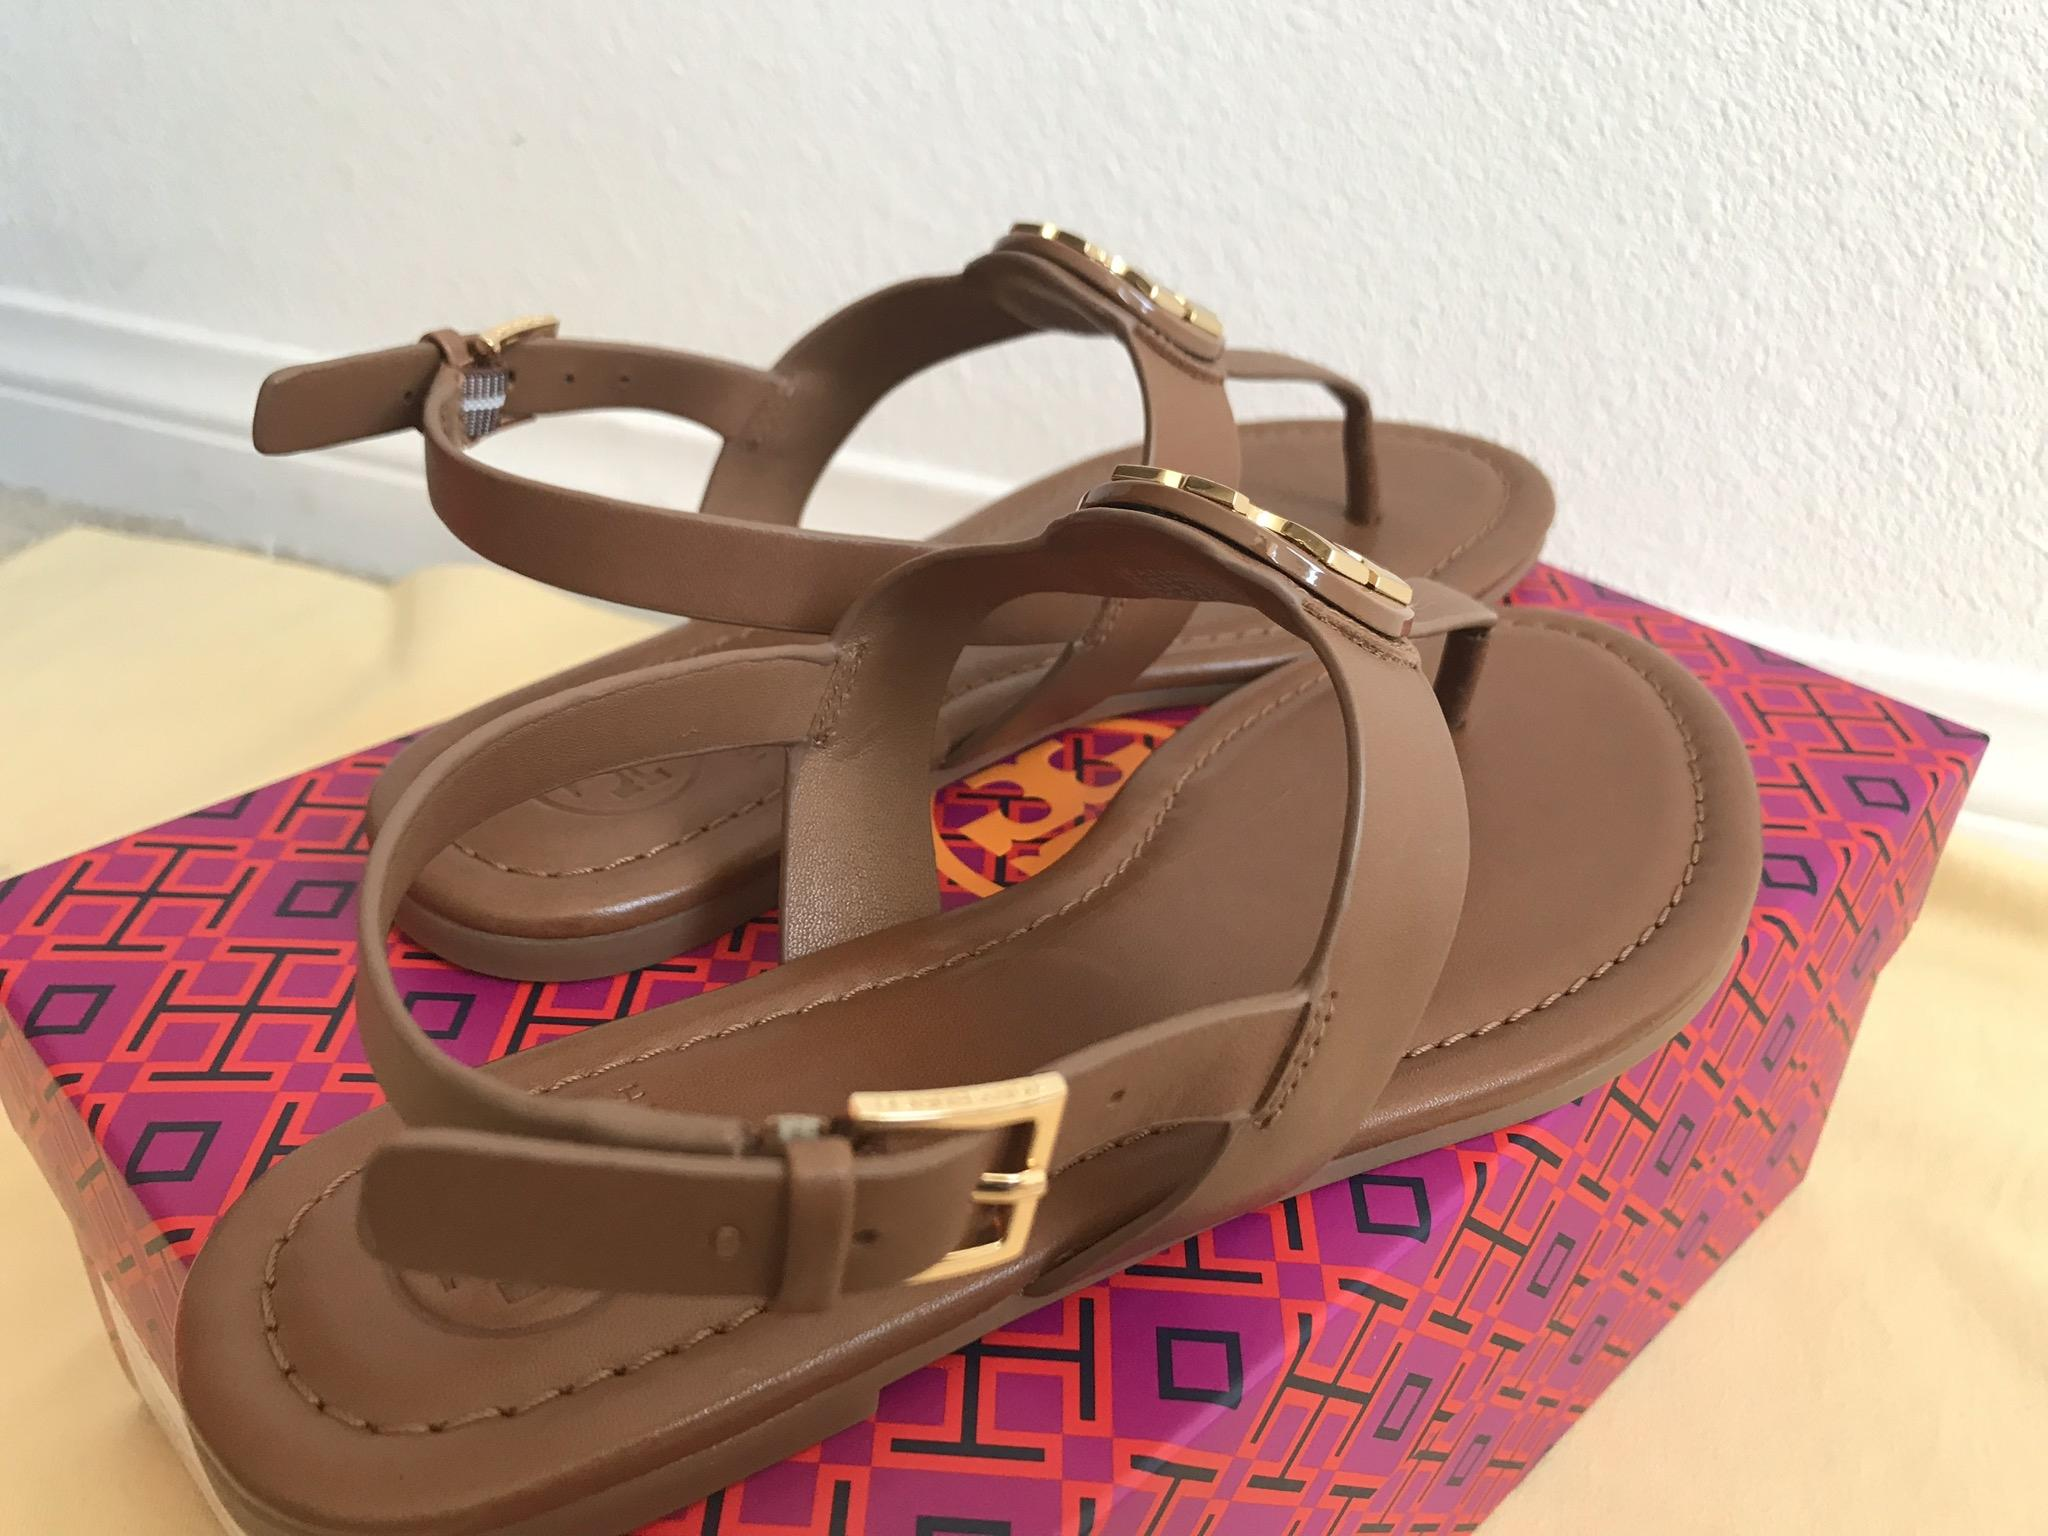 ea3bb65c2ad ... Tory Burch Brown Bryce Flat Thong Sandals Sandals Sandals Size US 6  Regular (M